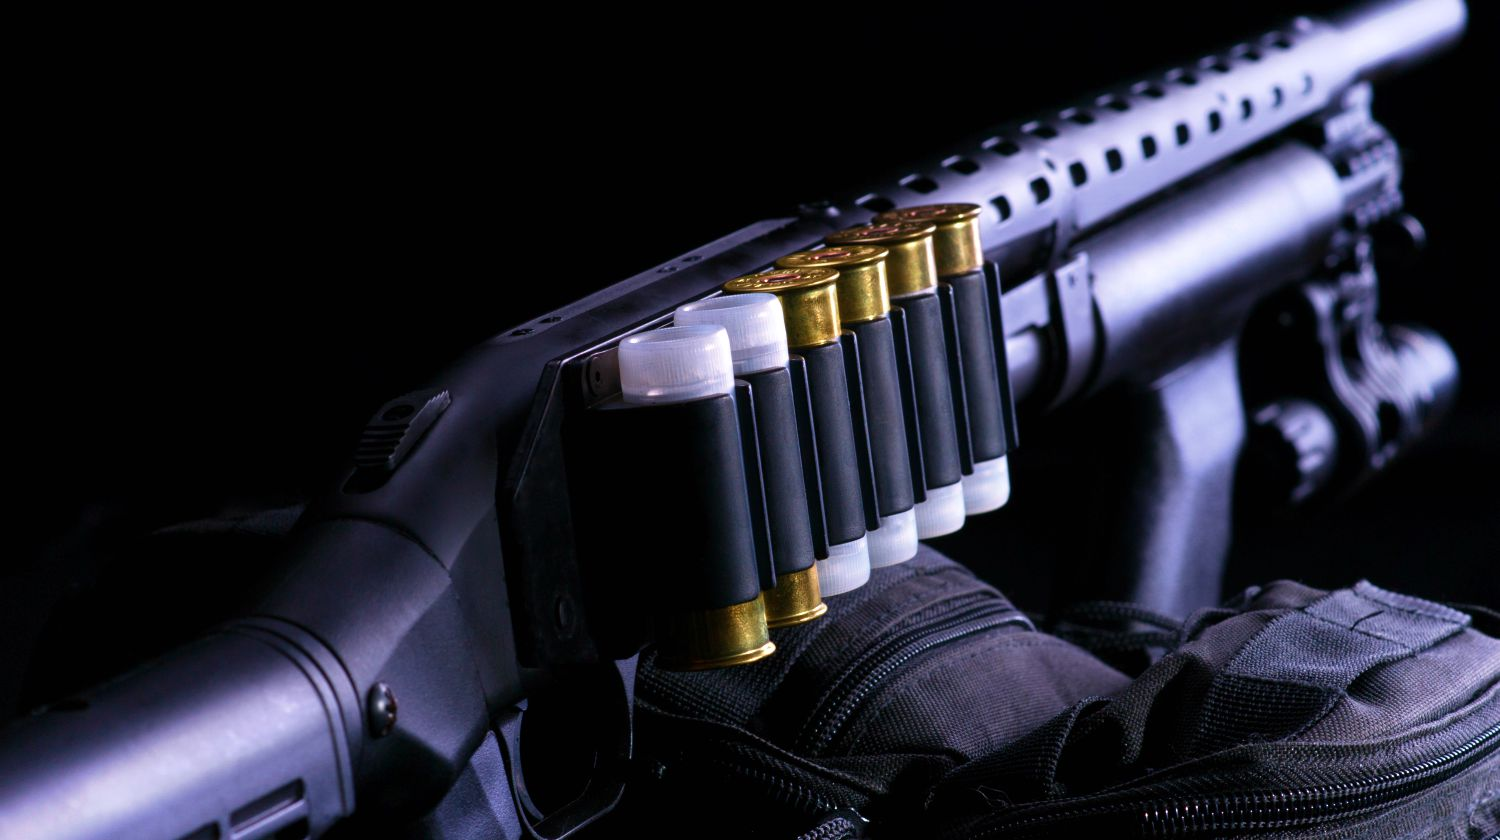 Shotgun, shotgun cartridges on a black background | The Best In Home Defense | Mossberg 500 Tactical | Featured